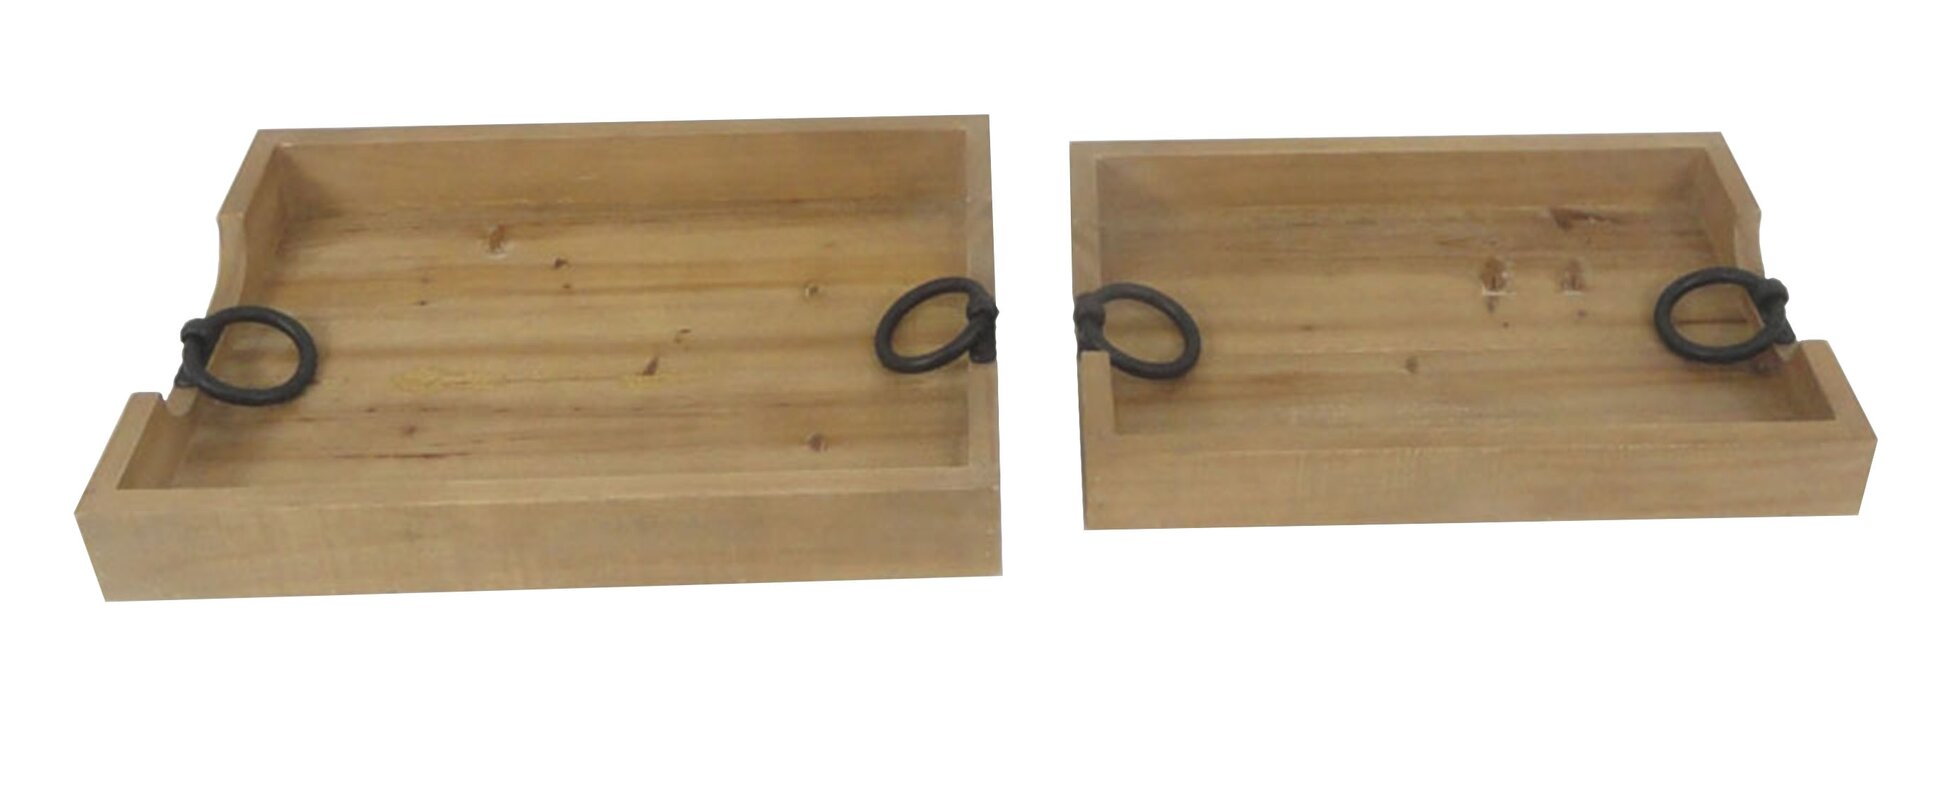 High Quality 2 Piece Wood Serving Tray Set